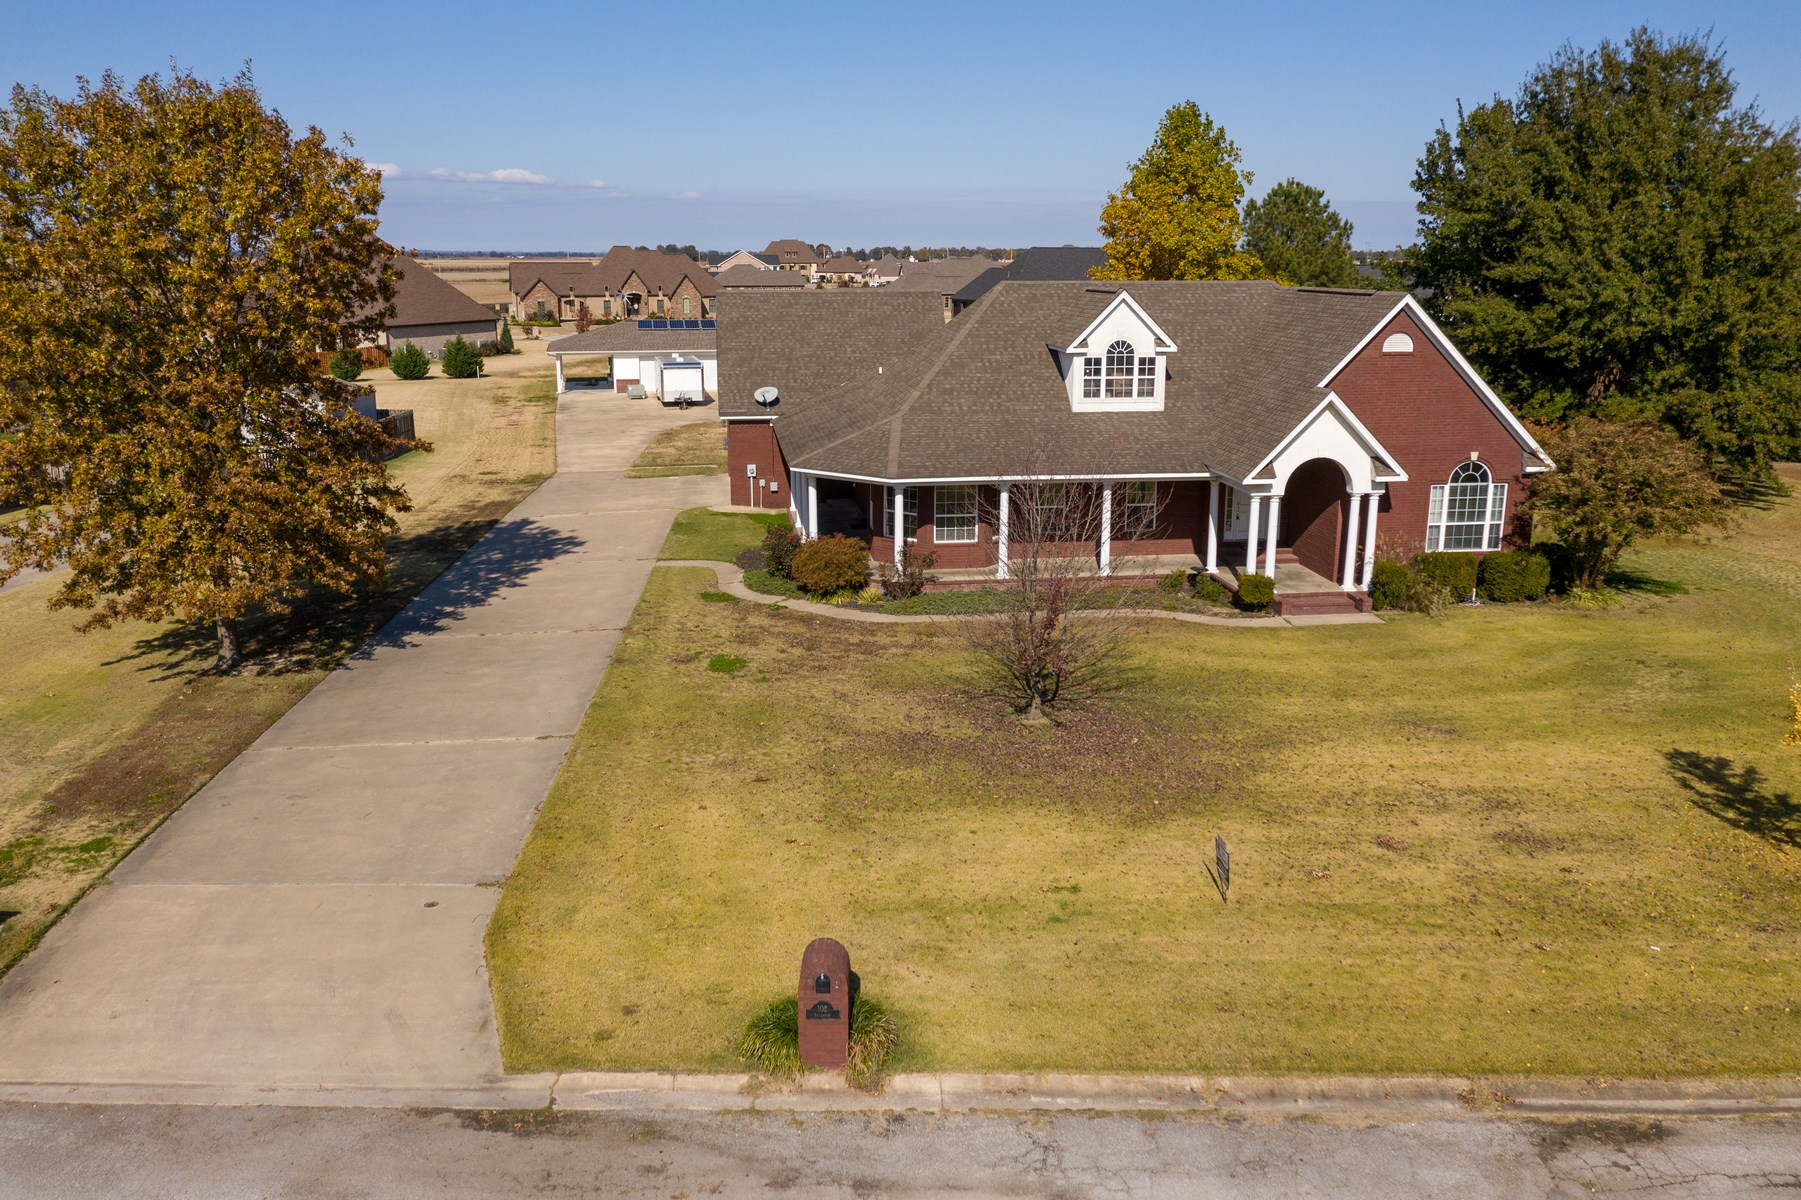 Home For Sale in Walnut Ridge AR